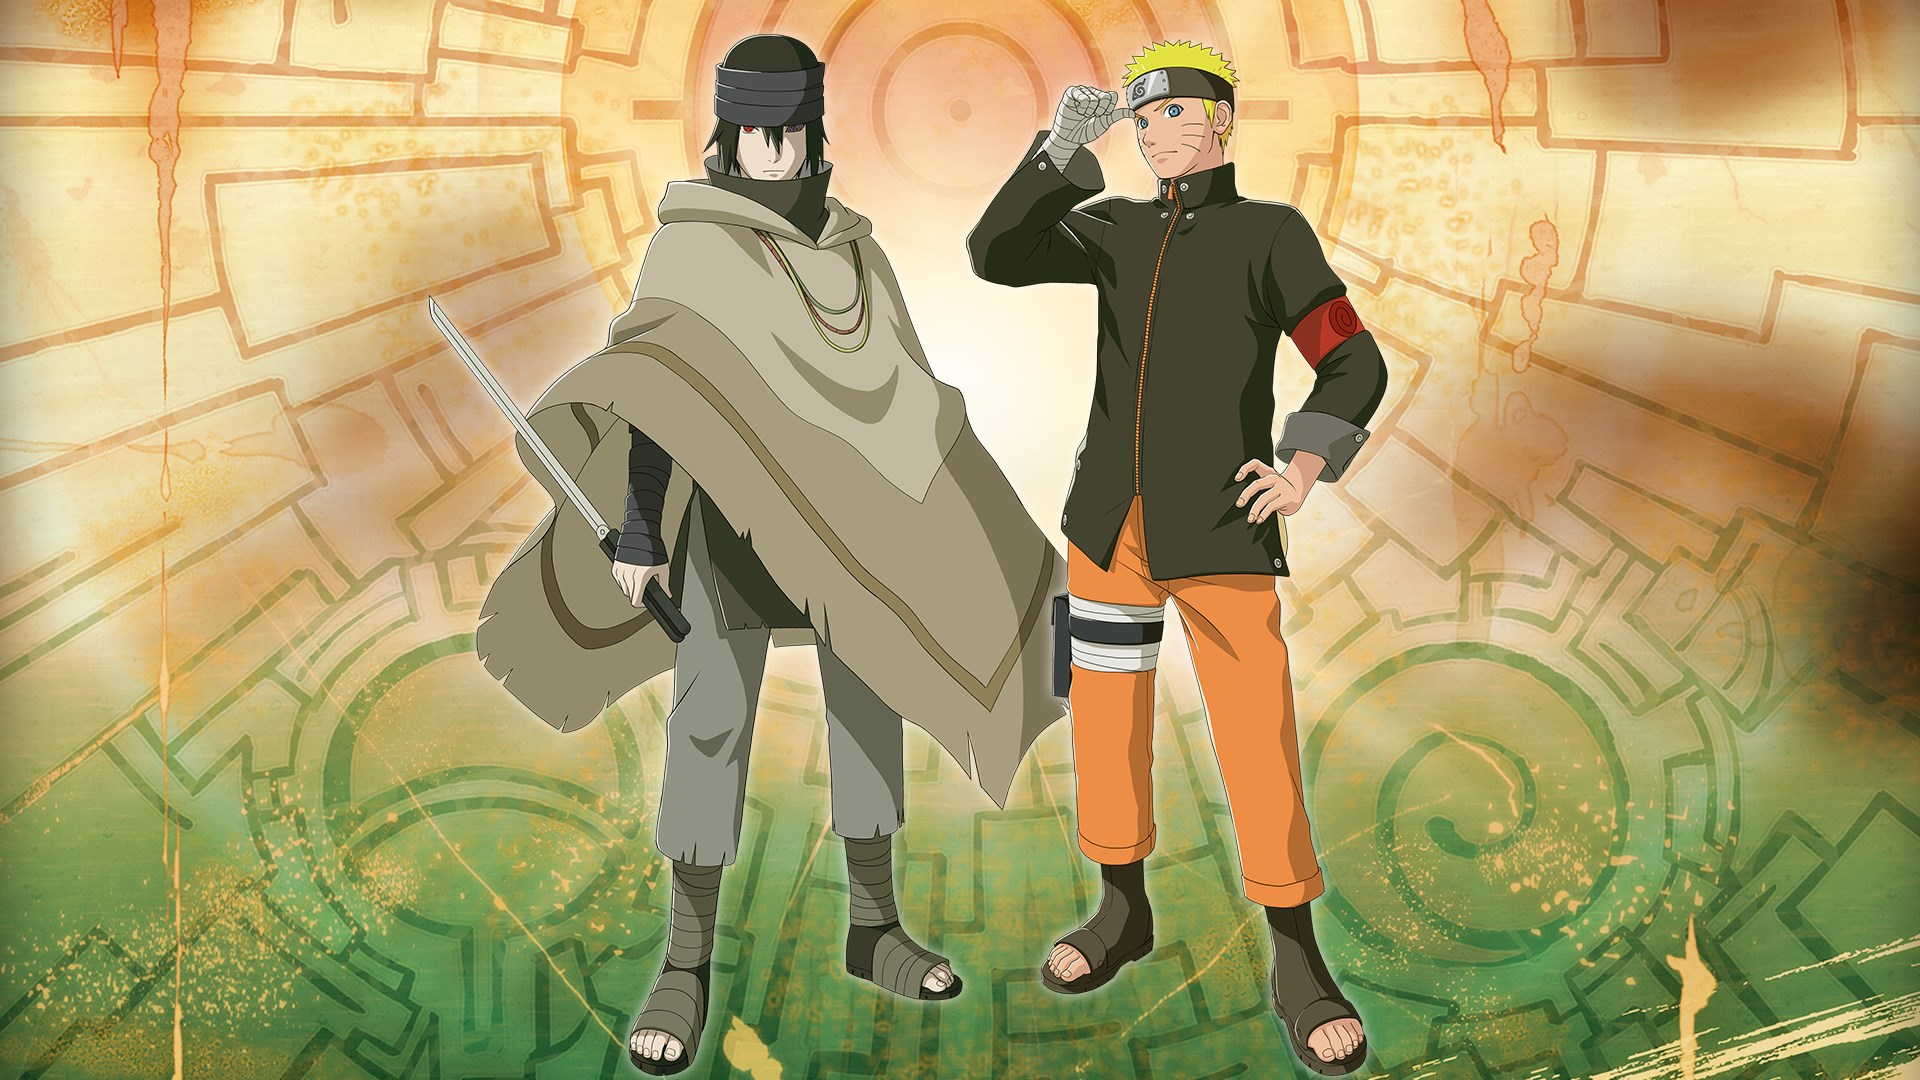 NARUTO STORM 4 - Pre-order Early Access